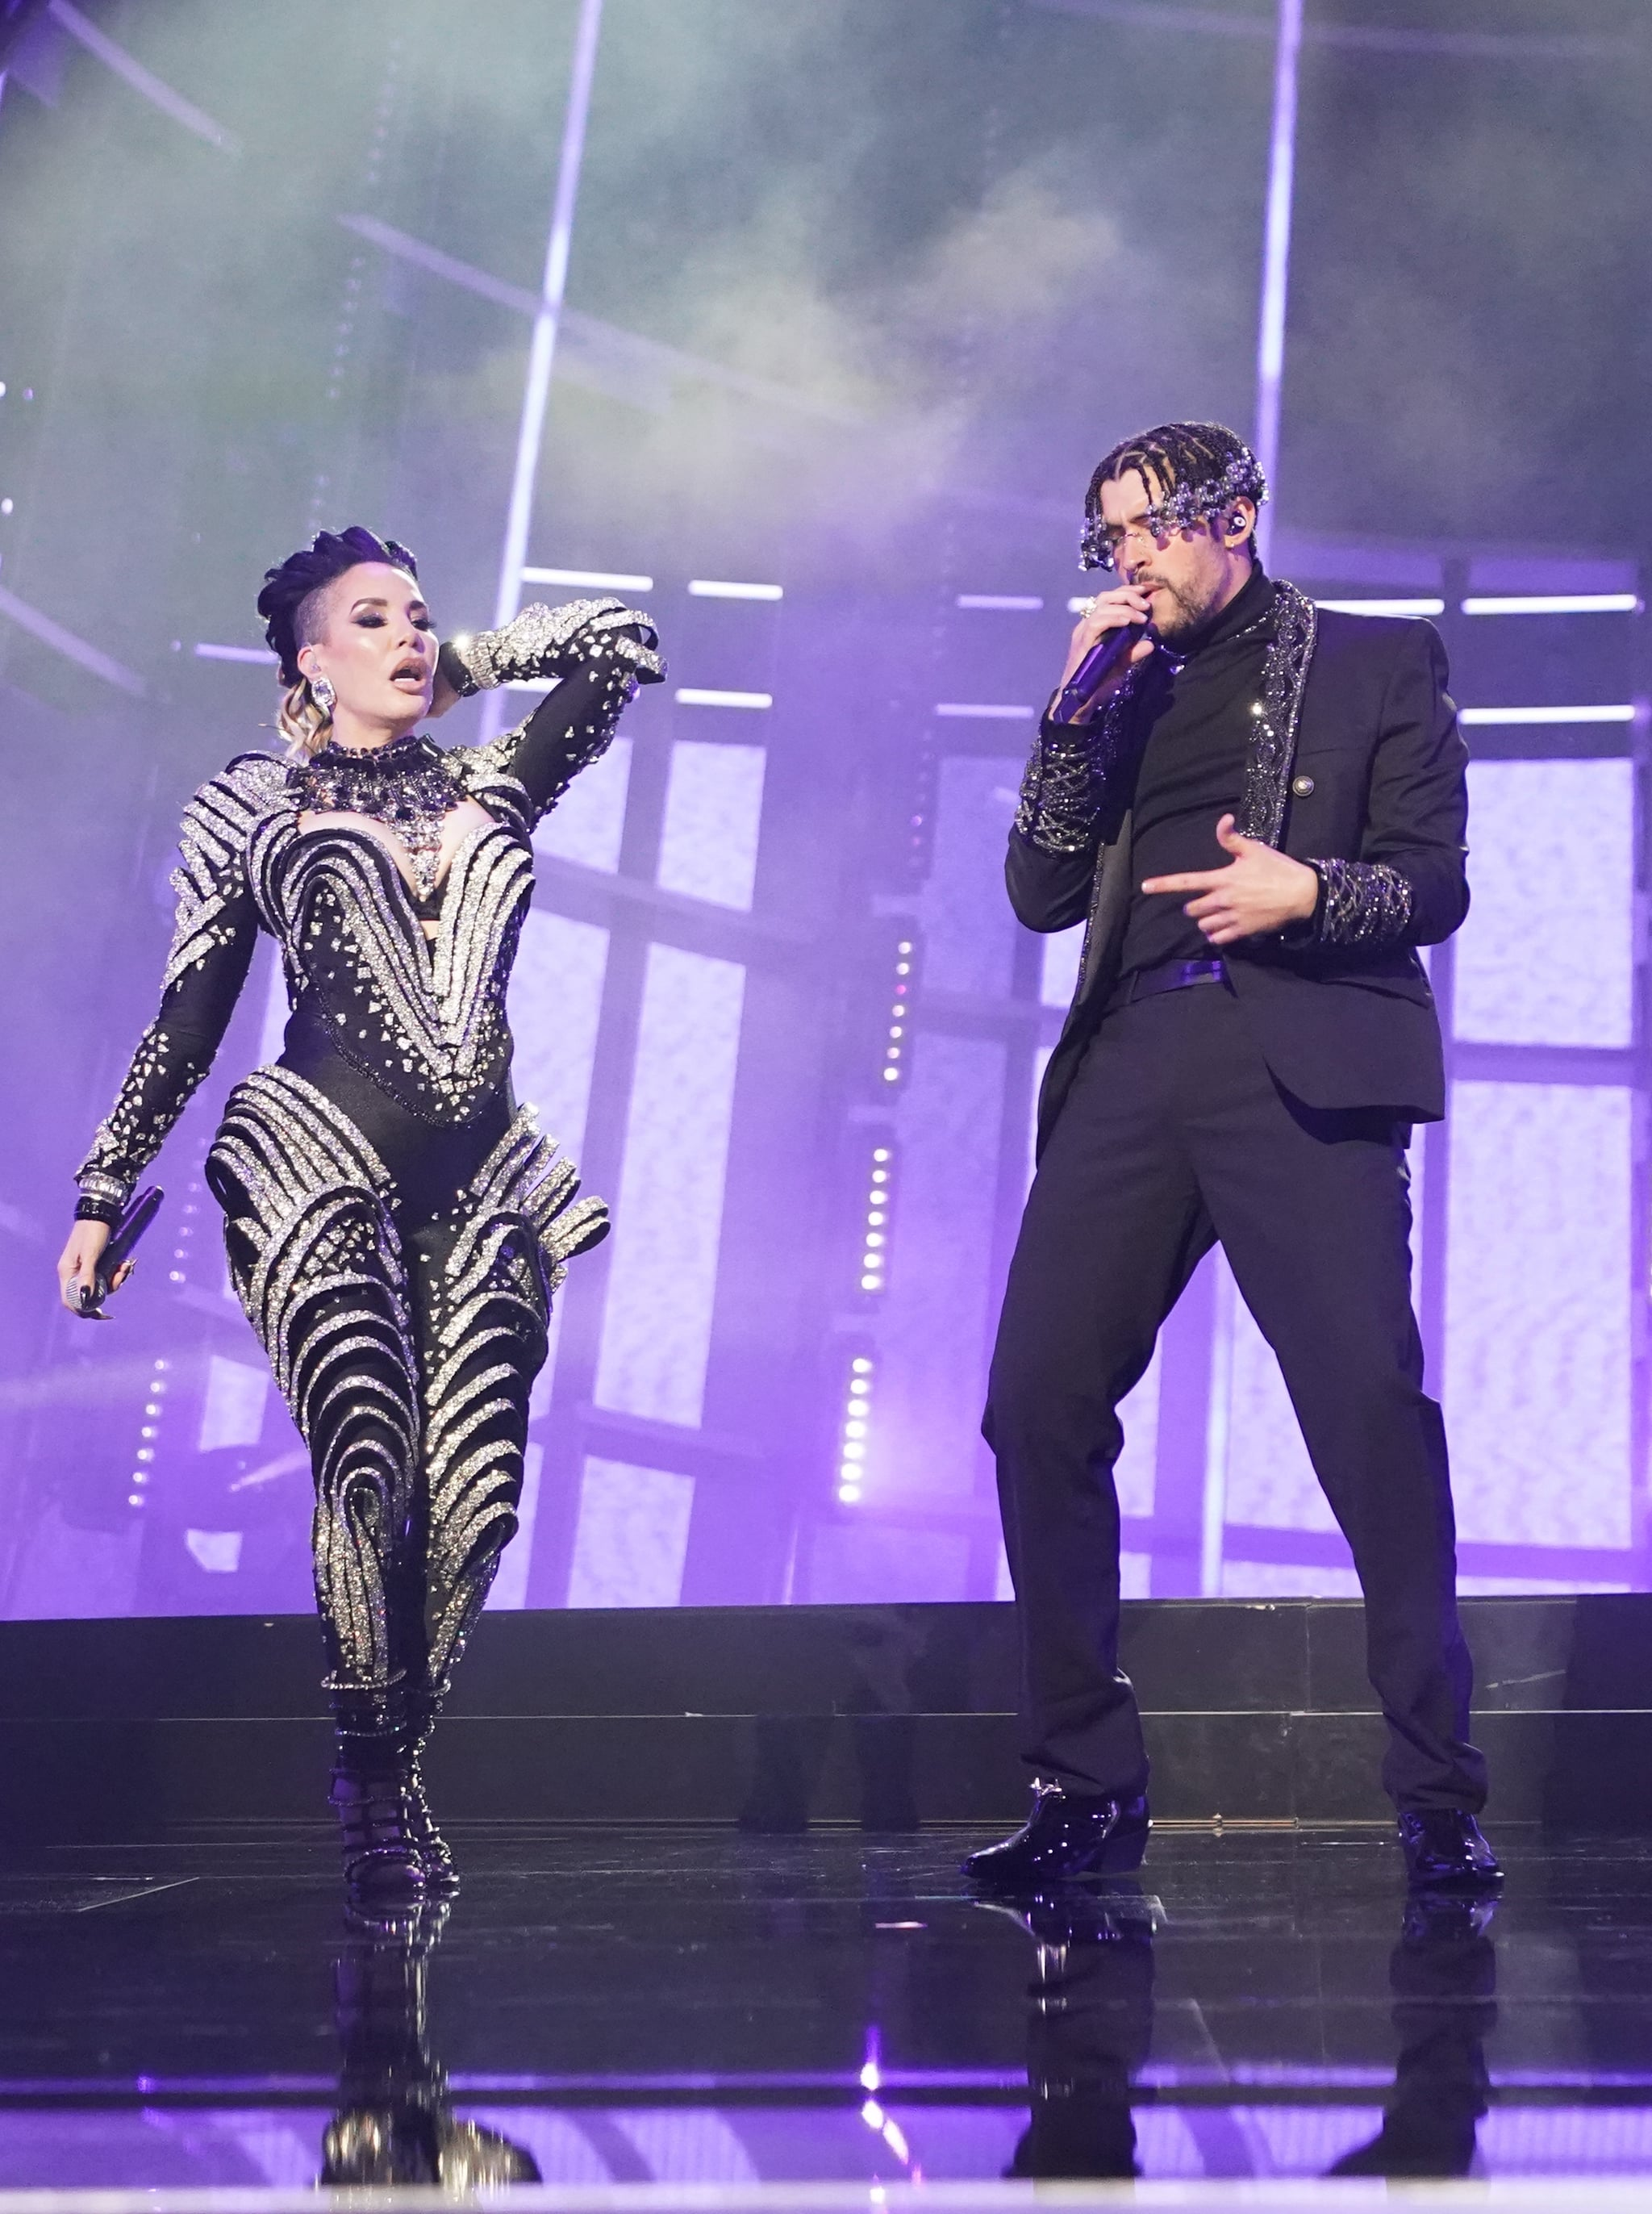 Ivy Queen And Bad Bunny At The 2020 Billboard Music Awards Presenting The 42 Best Photos From This Year S Billboard Music Awards Popsugar Celebrity Photo 37